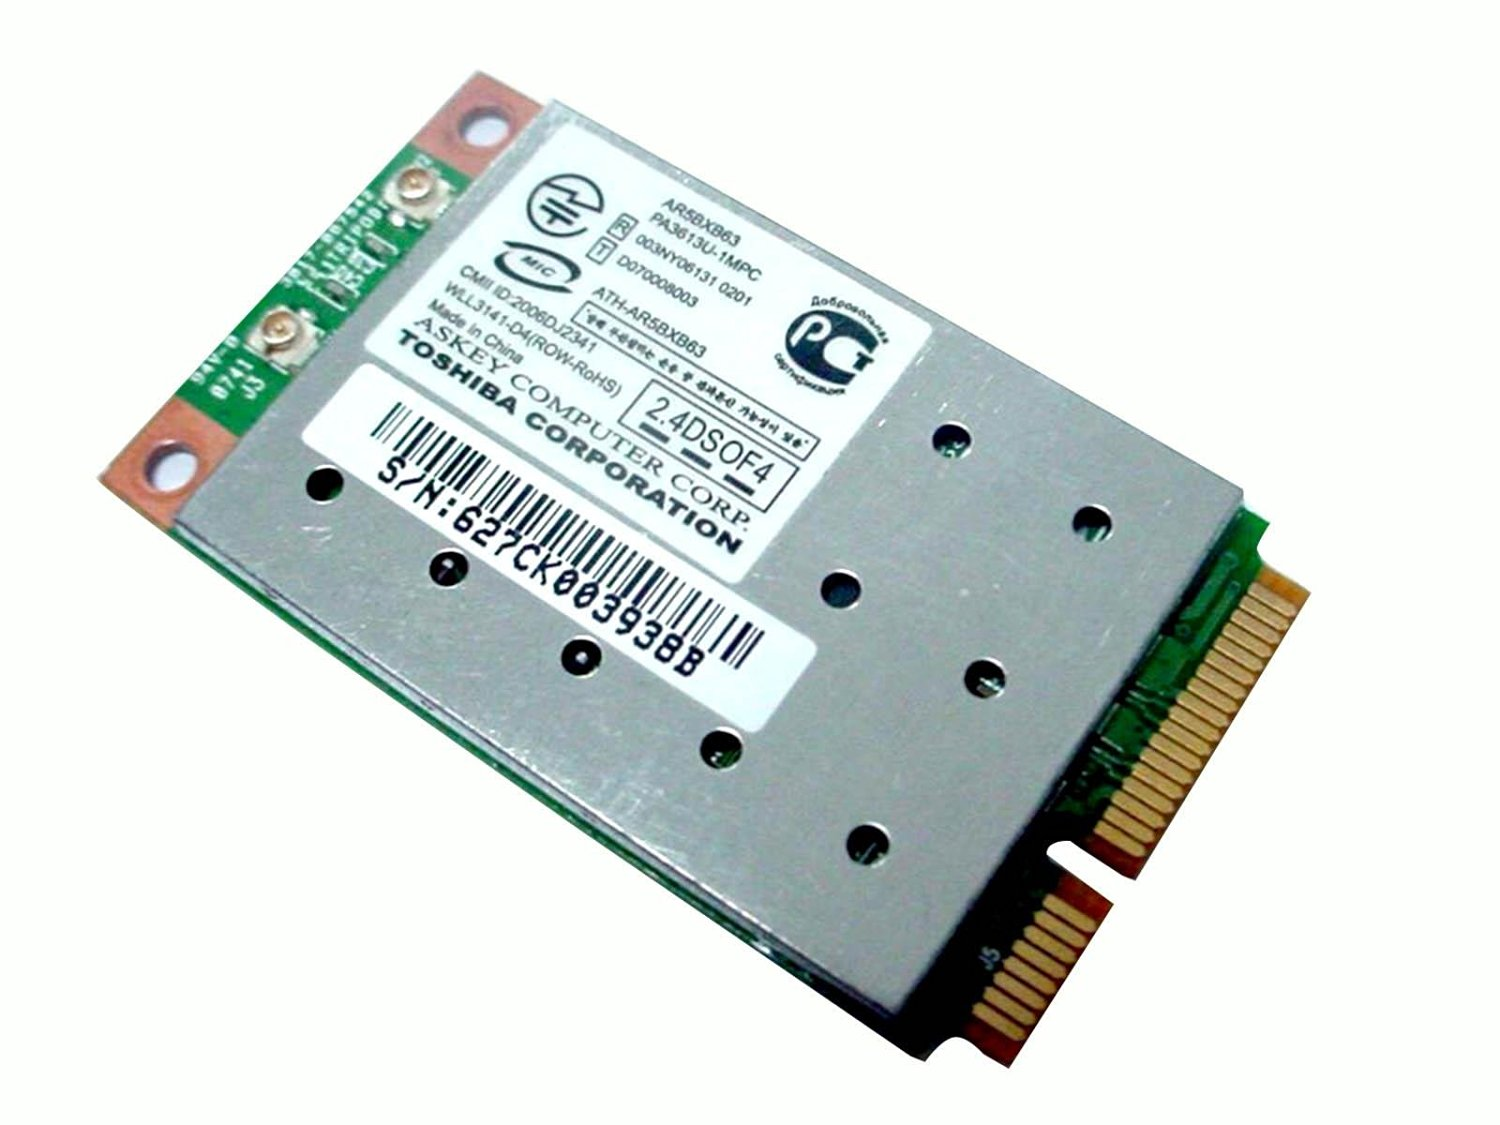 atheros ar9285 wireless network adapter driver windows 8.1 64 bit